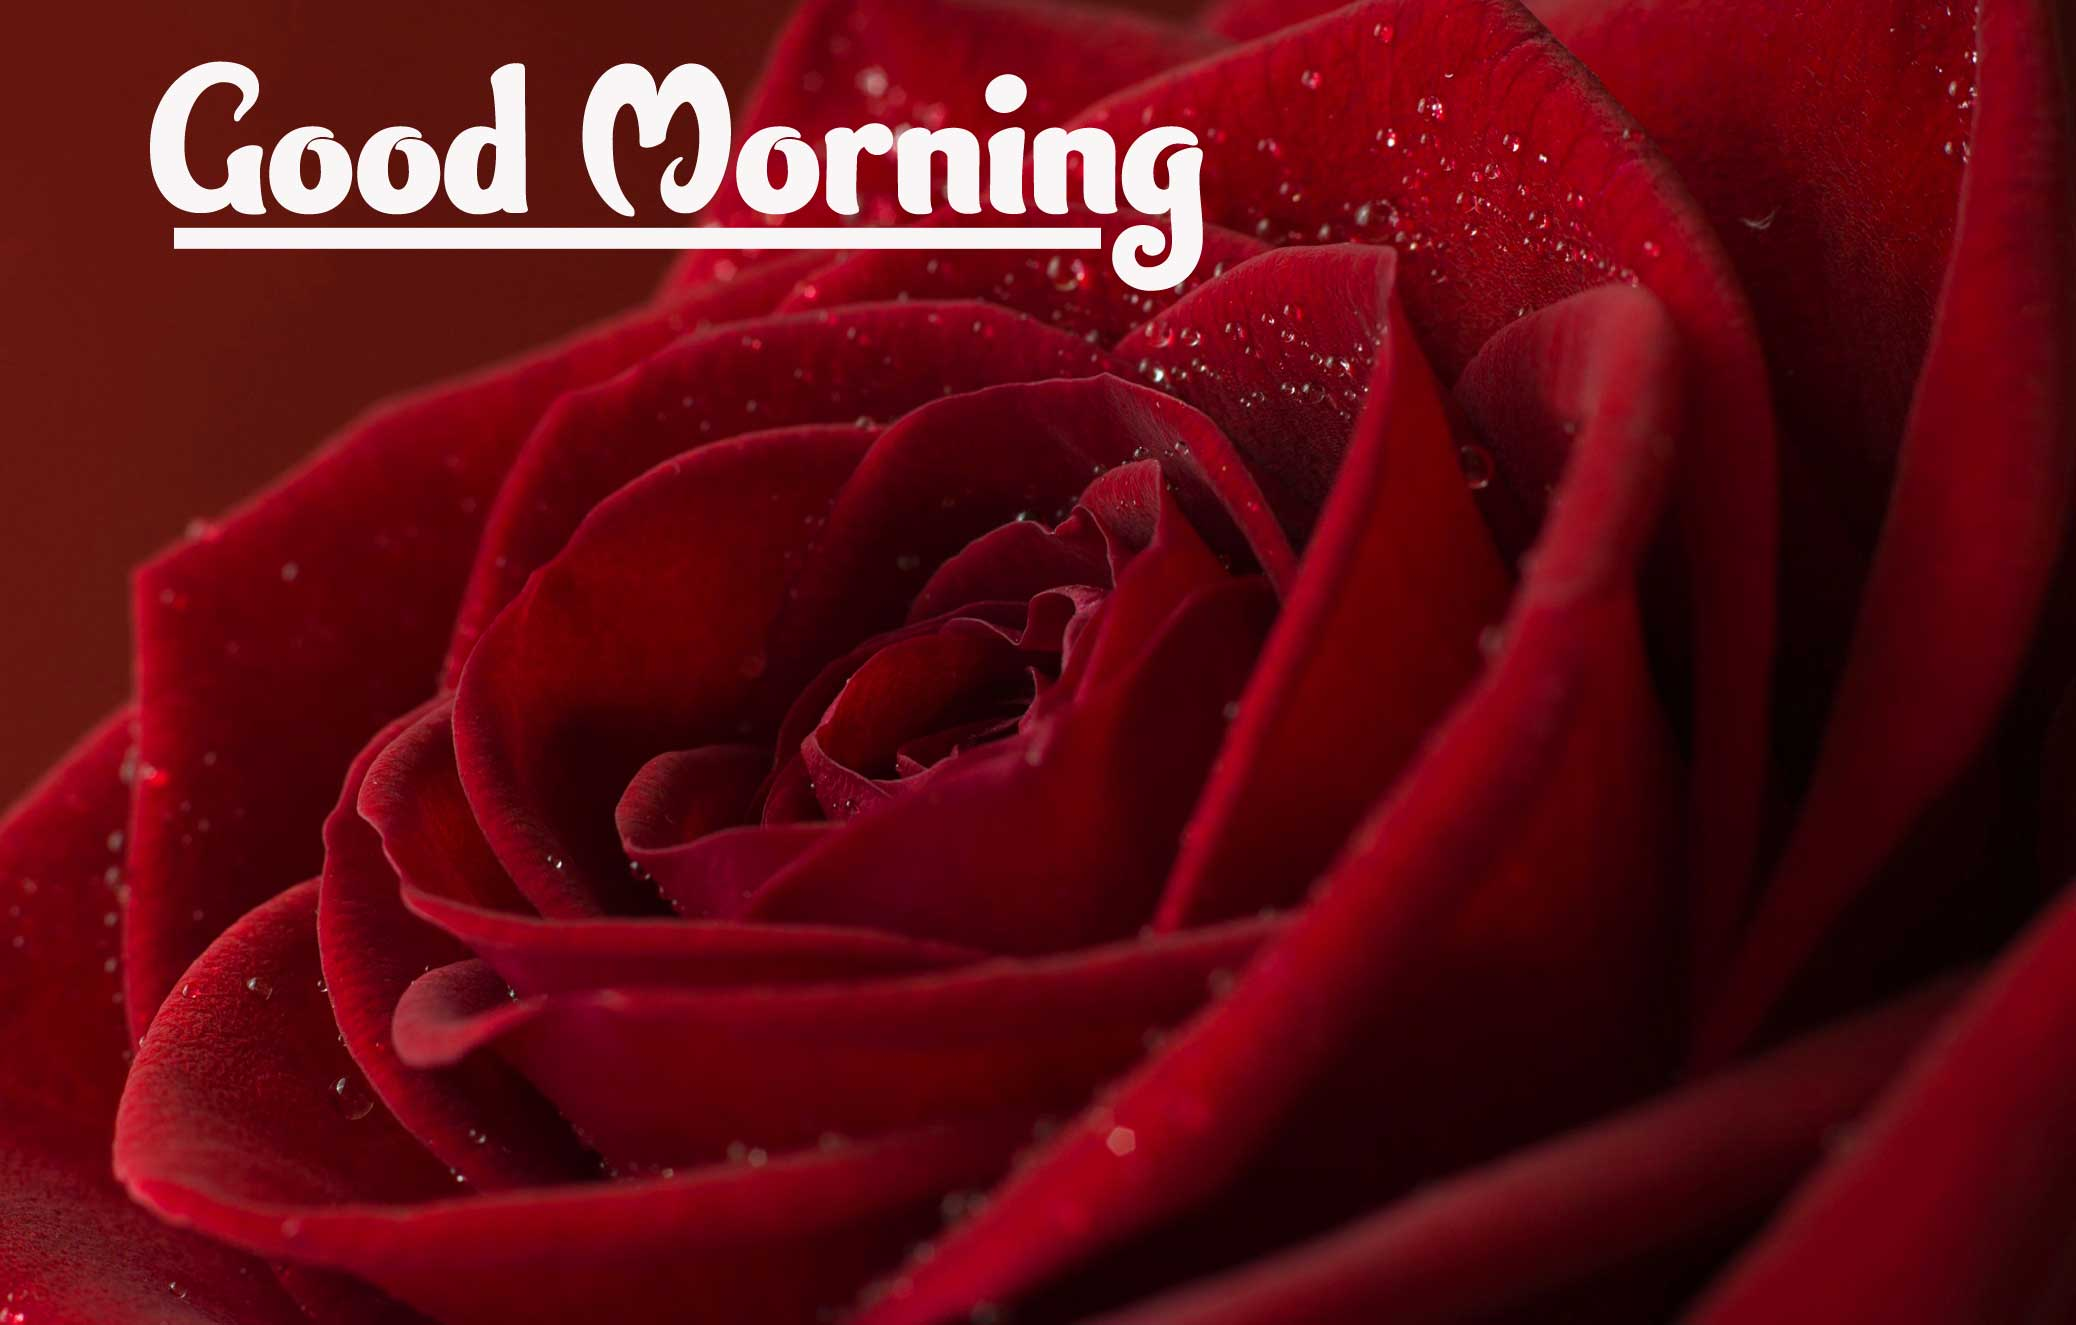 Good Morning Photo Pics Wallpaper Download